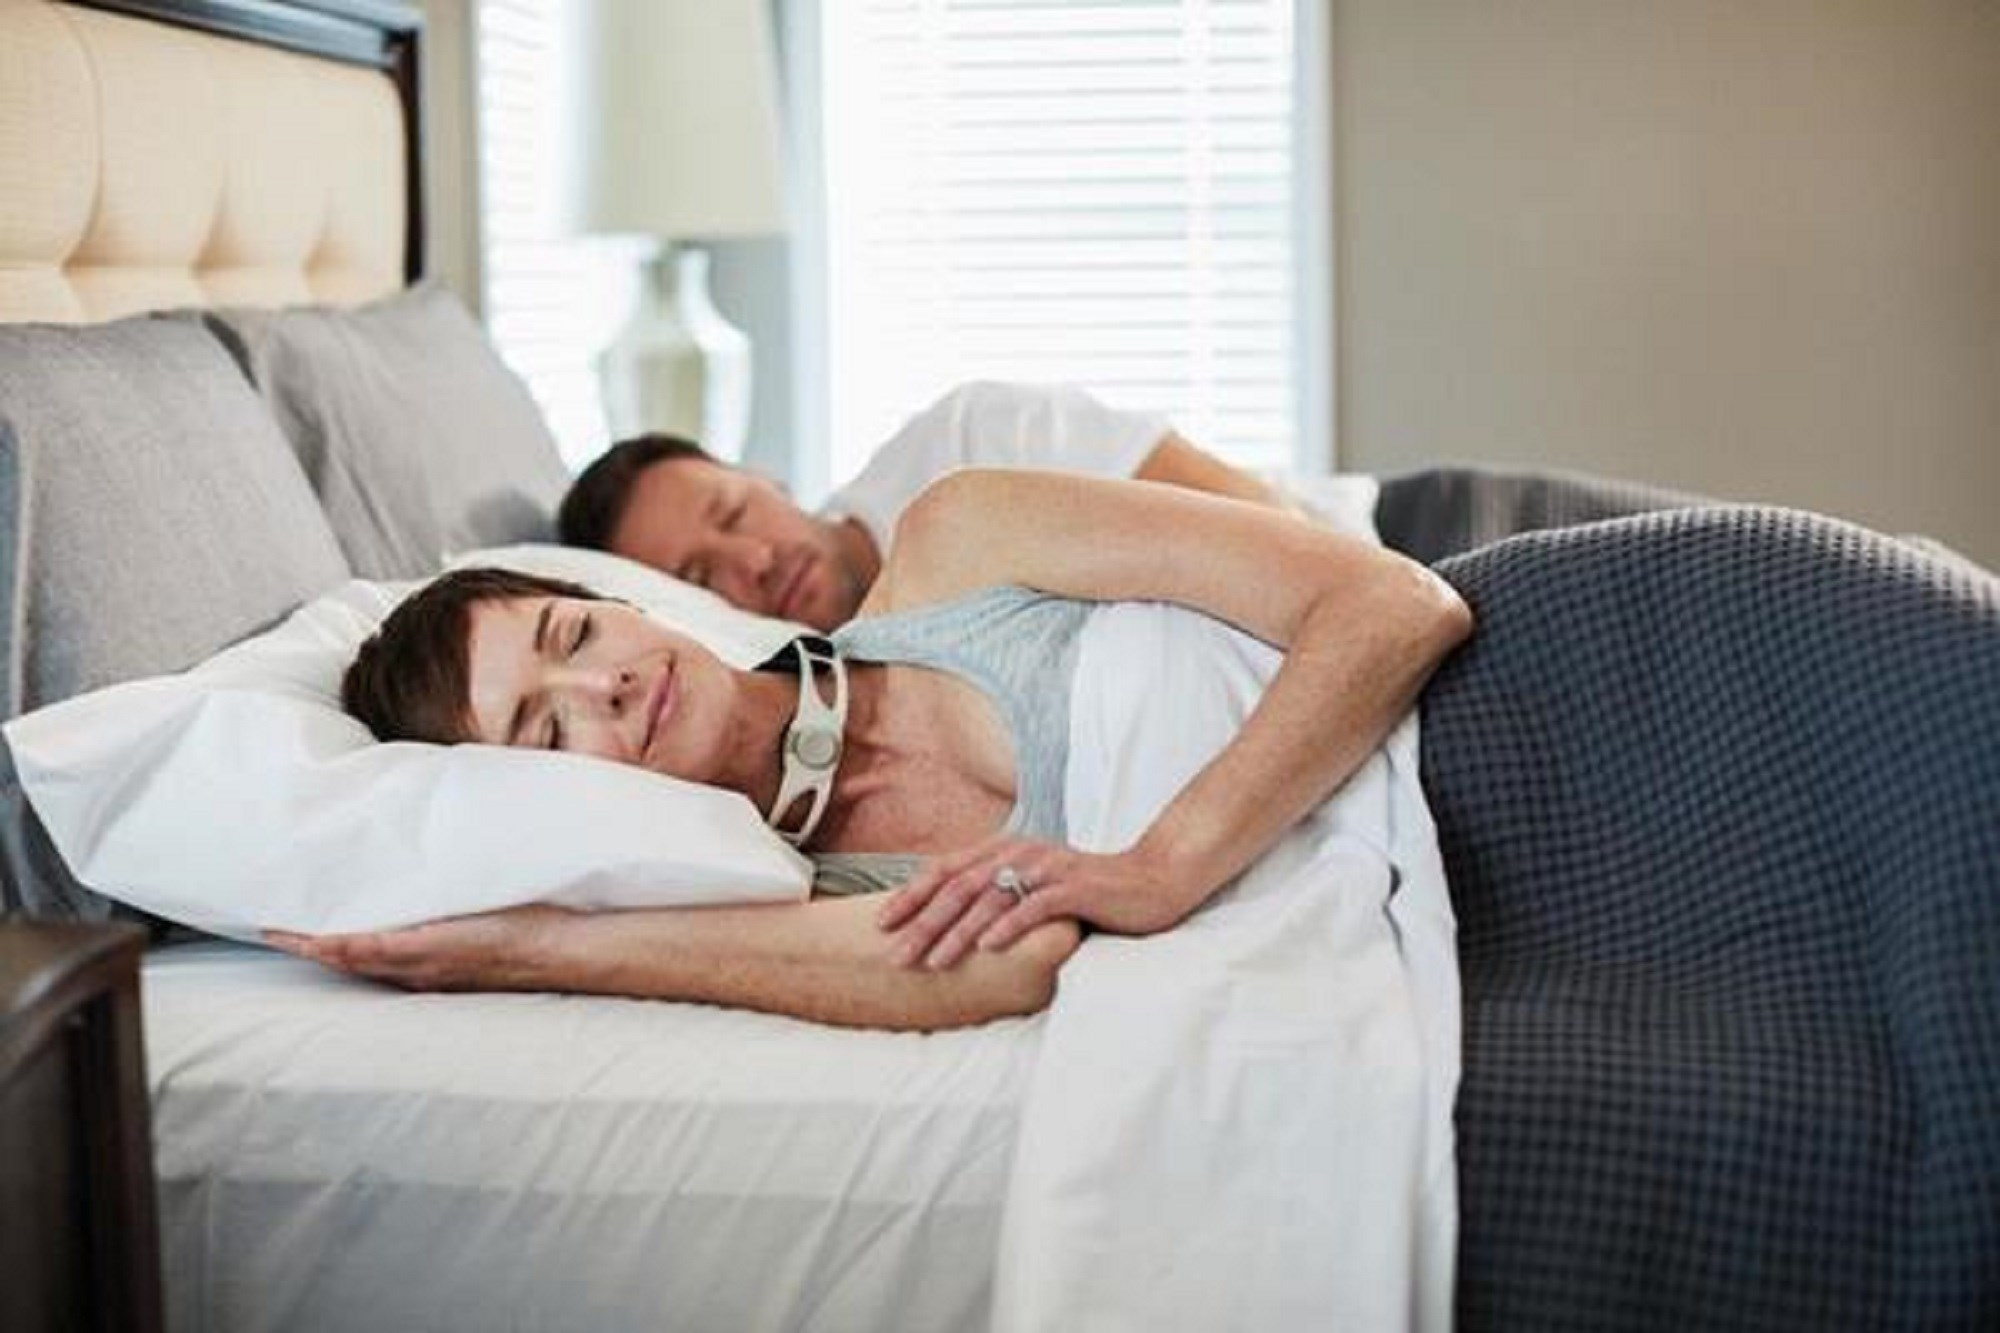 The device is worn around the neck during sleep and applies slight external pressure to the cricoid cartilage area (image provided by GlobeNewswire).